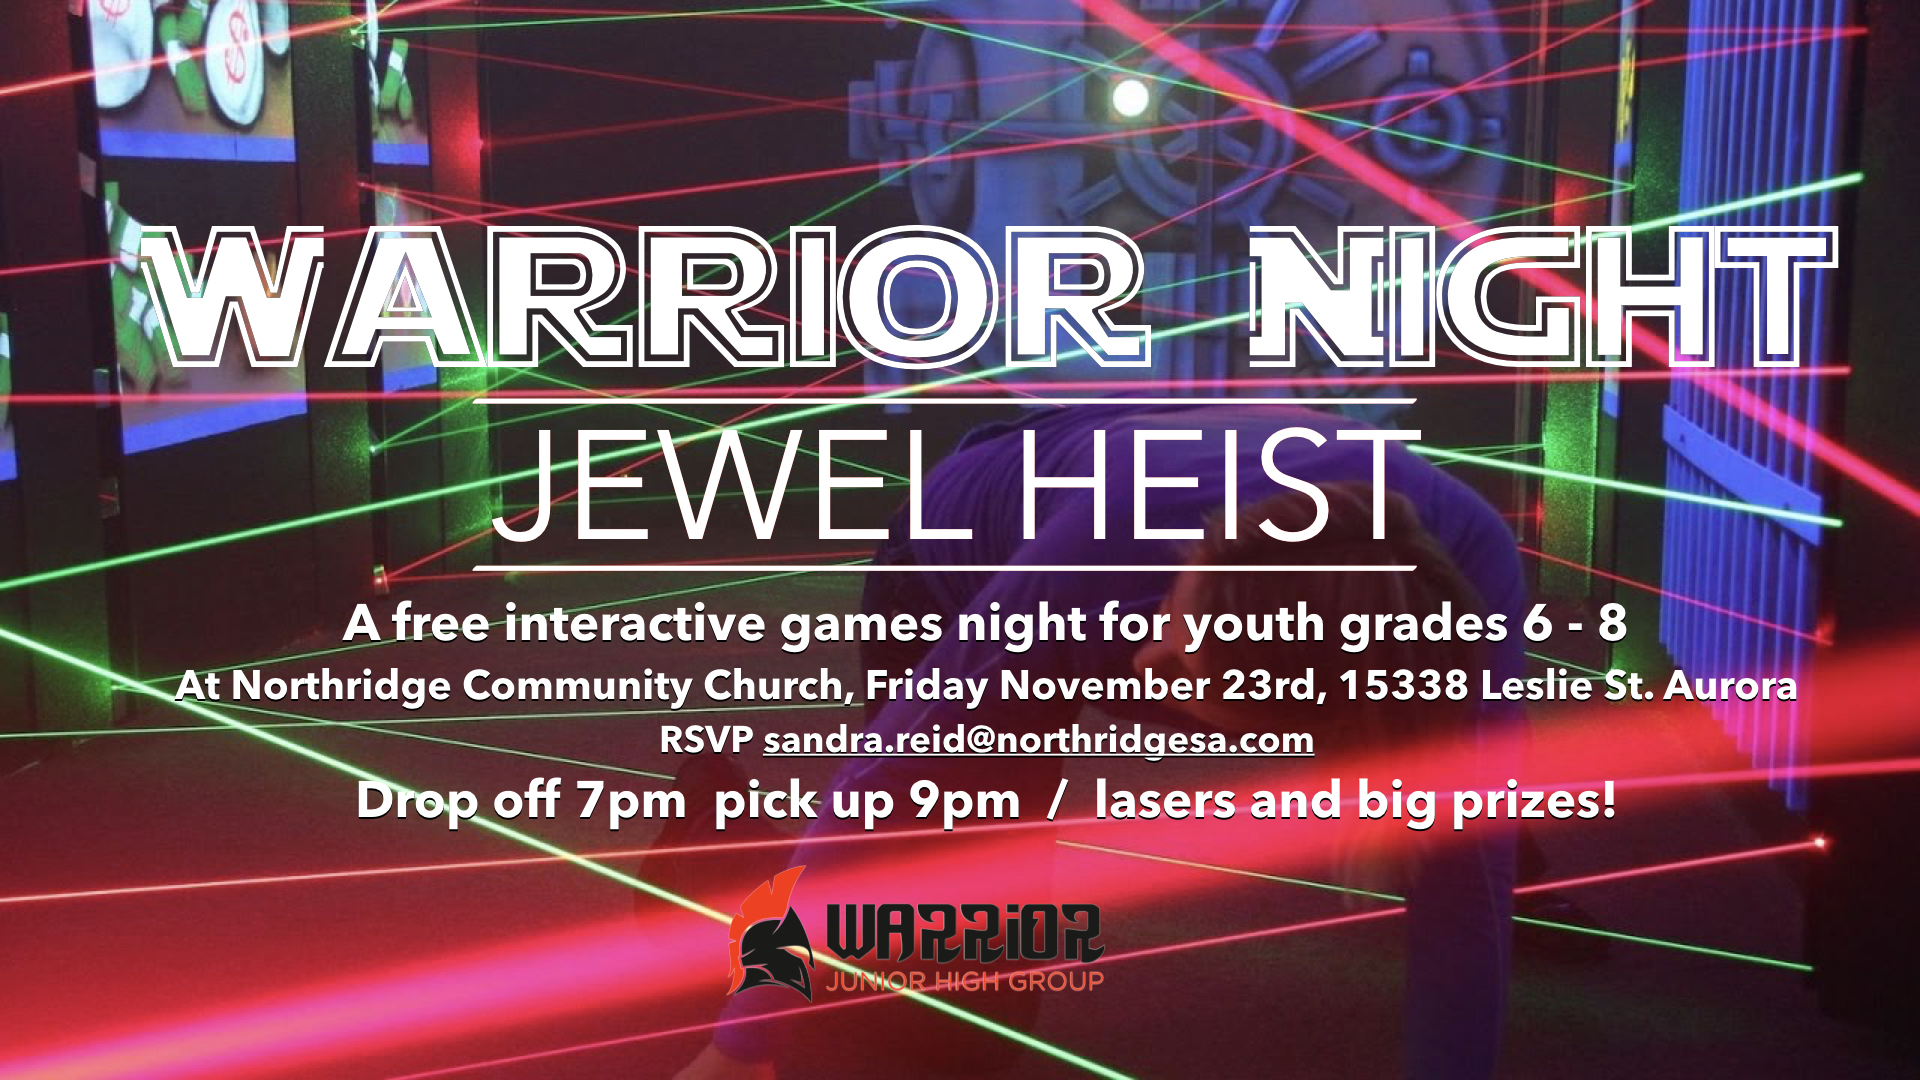 Warrior Night - Jewel Heist .jpg